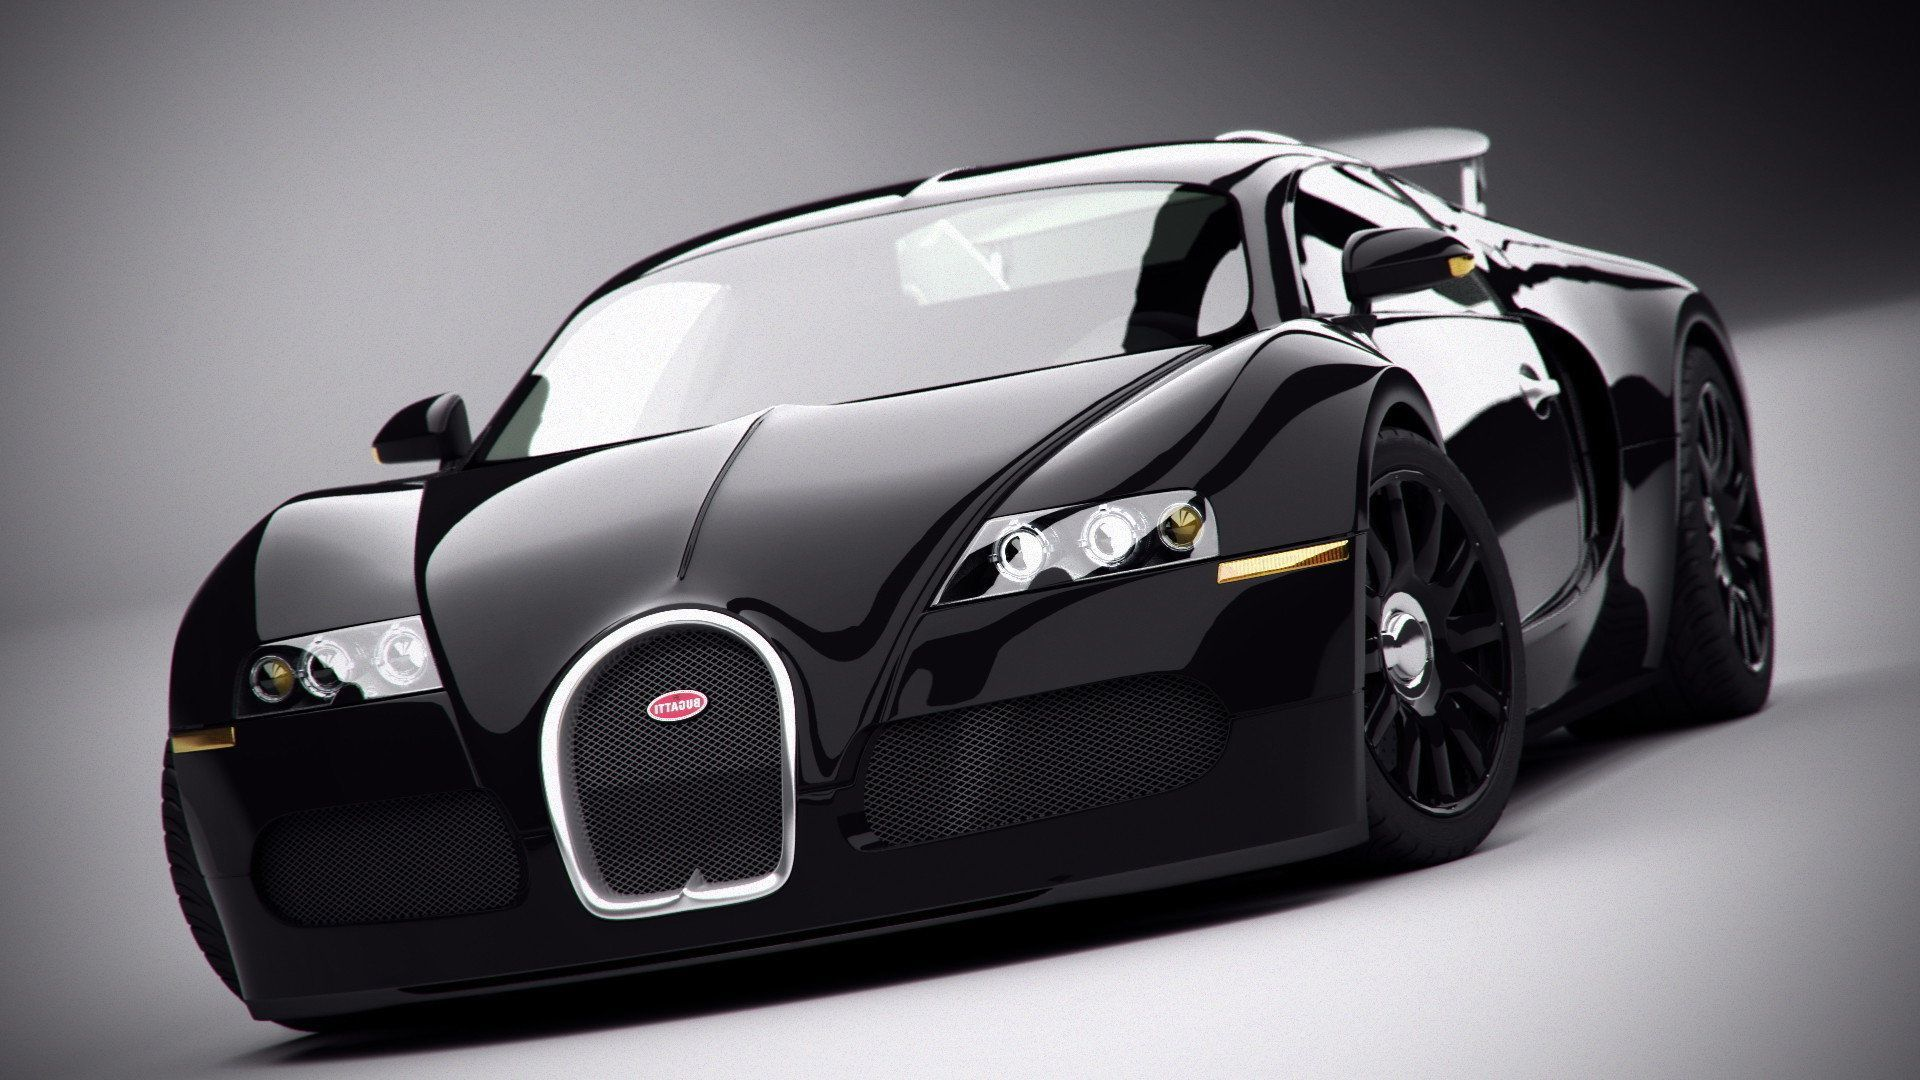 3dc38784717bb400274d8d382df85cd5 Stunning Bugatti Veyron Price Brand New Cars Trend